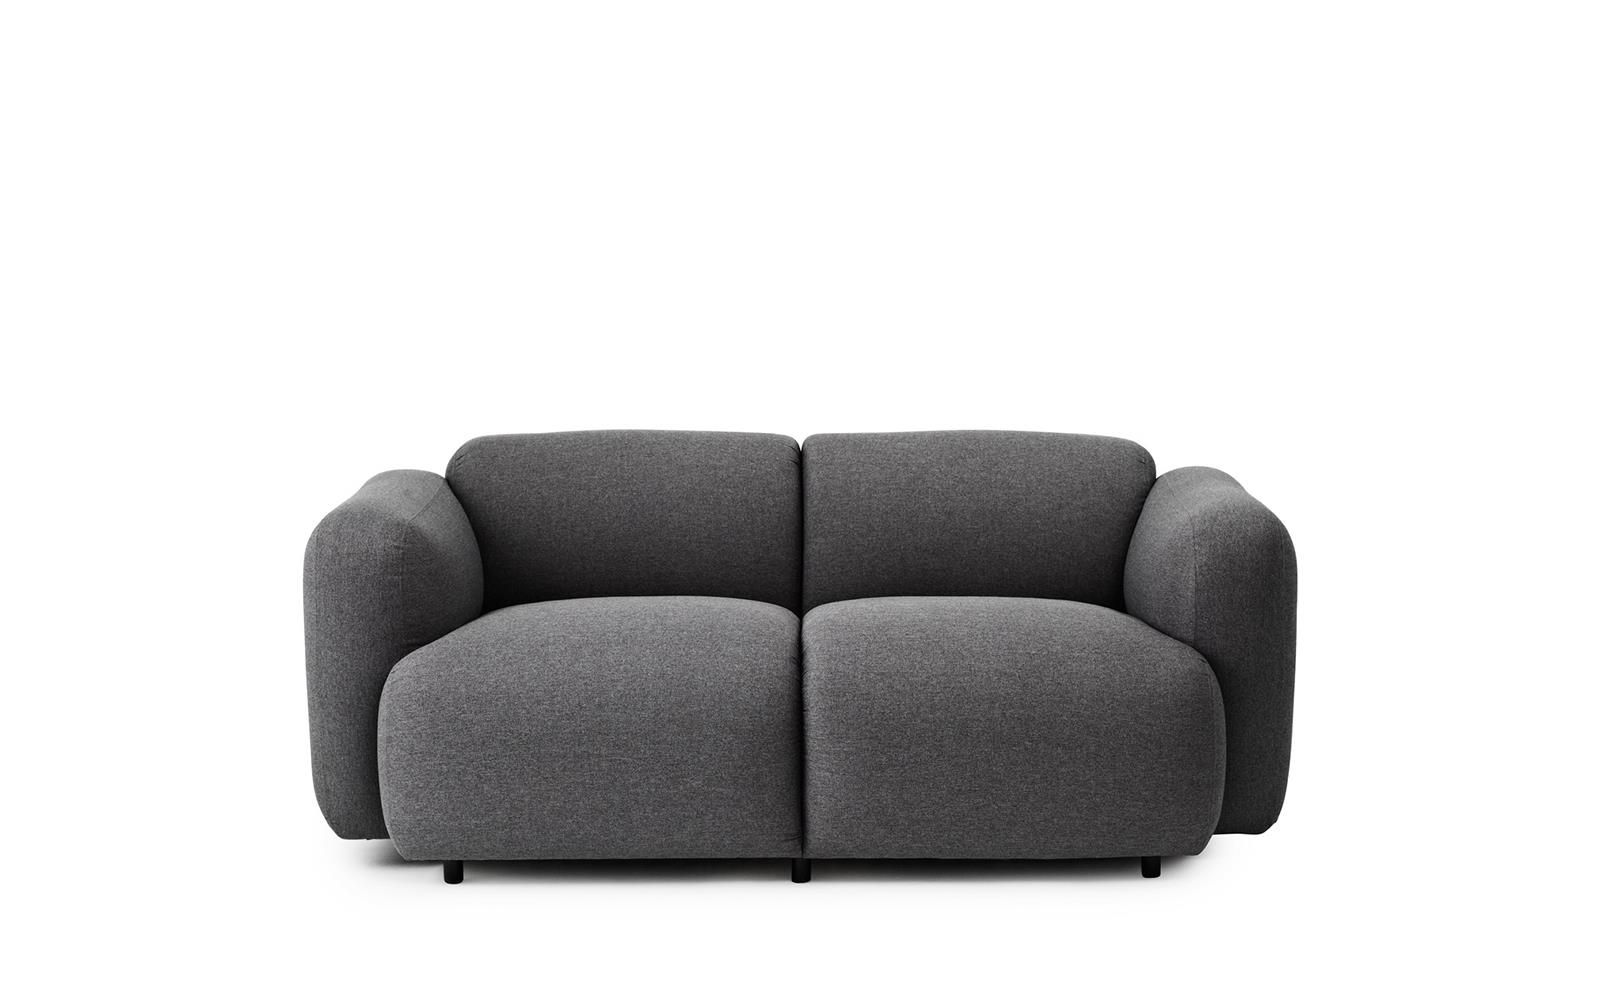 Swell Sofa 2 Seater Breeze Fusion